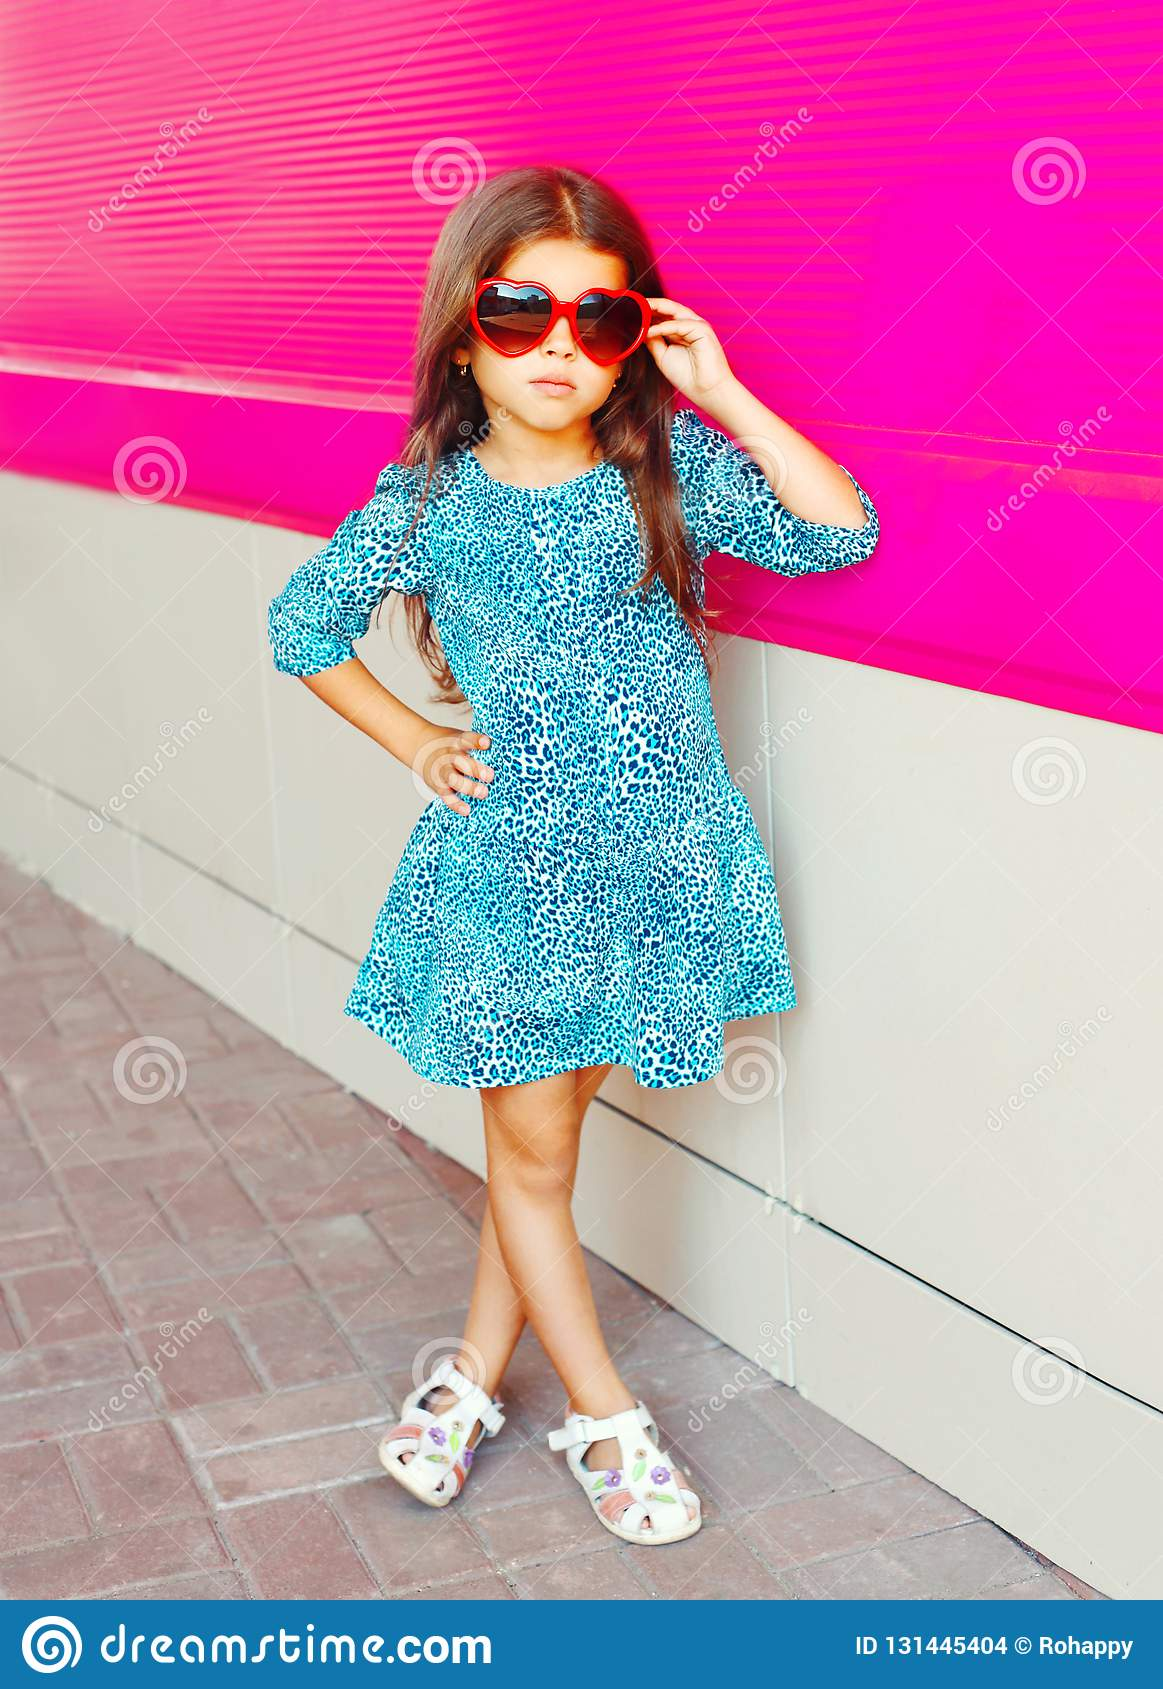 Beautiful little girl in leopard print dress on colorful pink